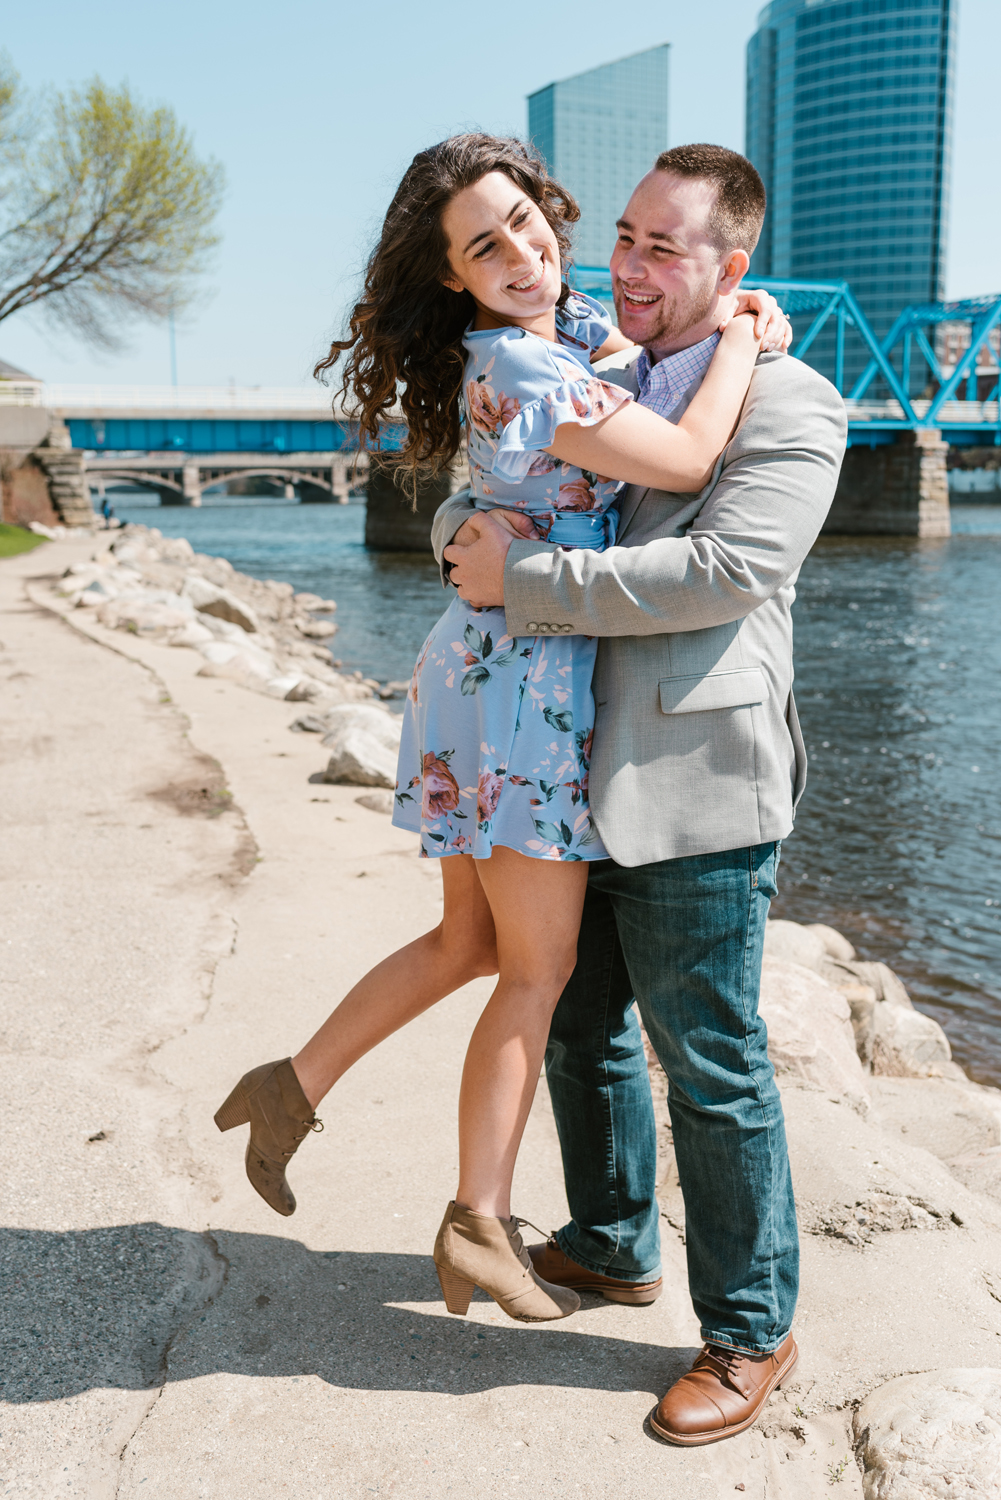 downtown-grand-rapids-michigan-engagement-photographer-spring-sydney-marie (8).jpg